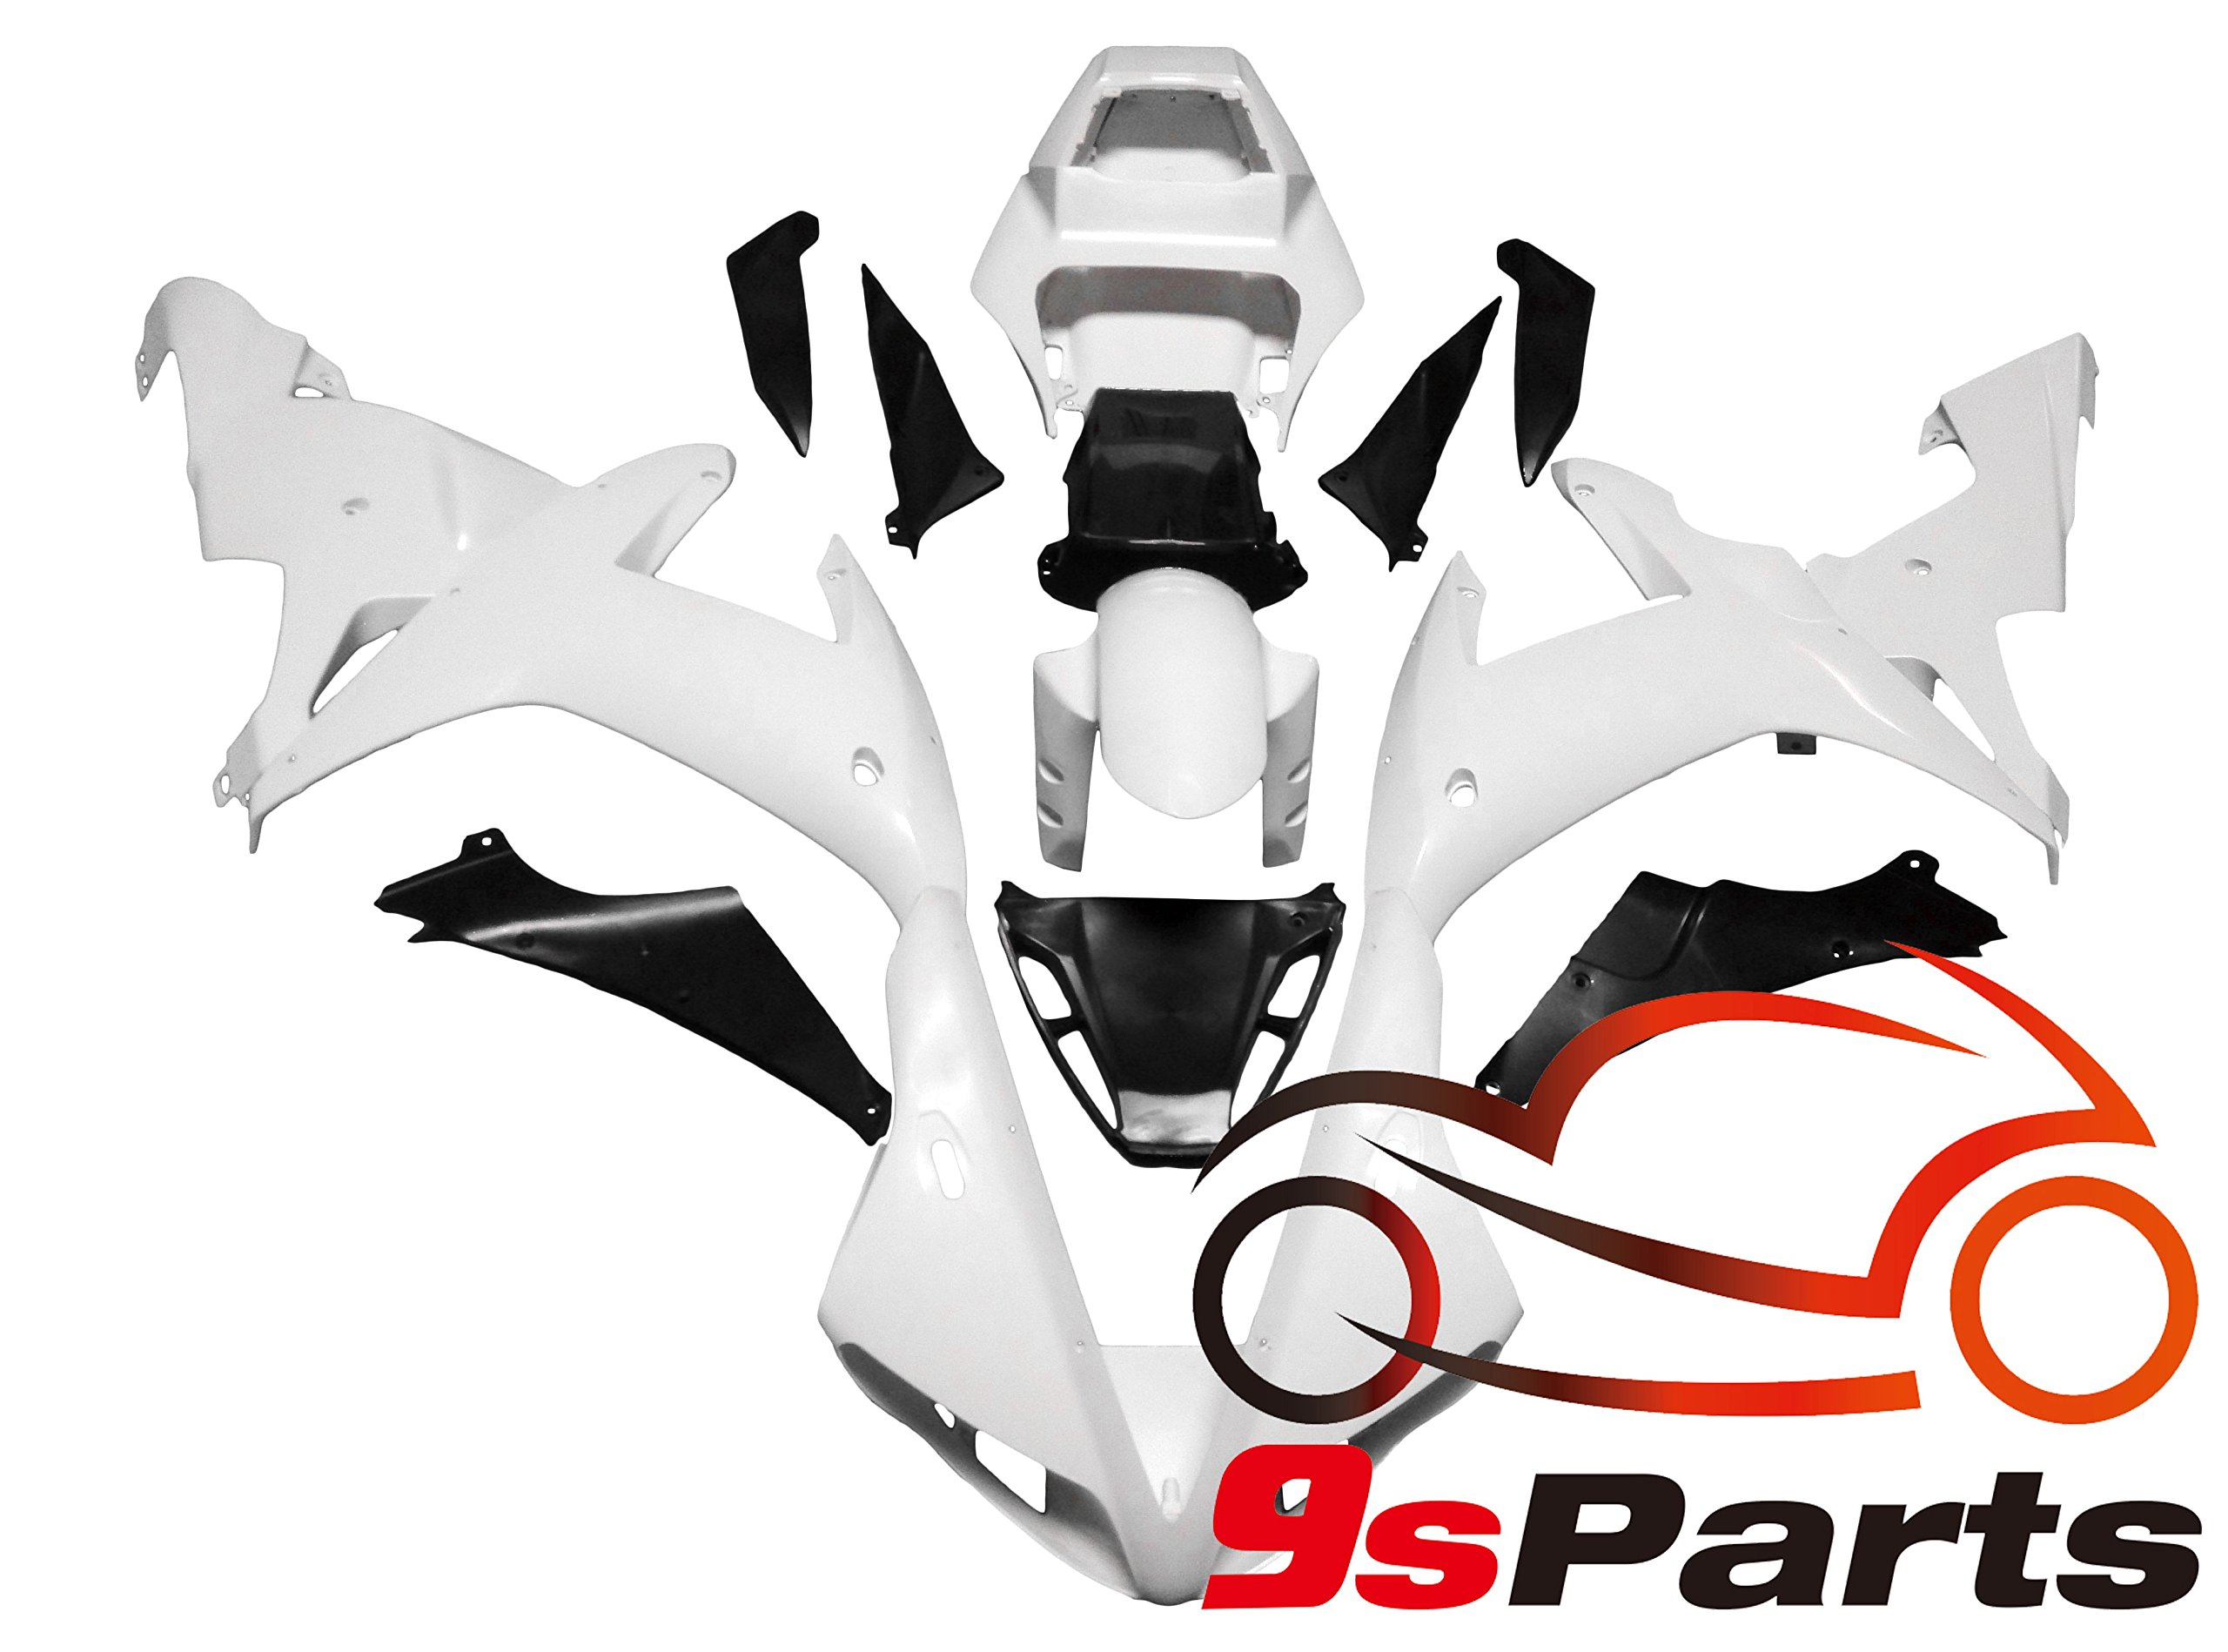 9sparts Unpainted ABS Plastic Injection Pre-Drilled Hole Cowl Fairings Bodywork Kit Complete Set For 2002 2003 Yamaha YZF R1